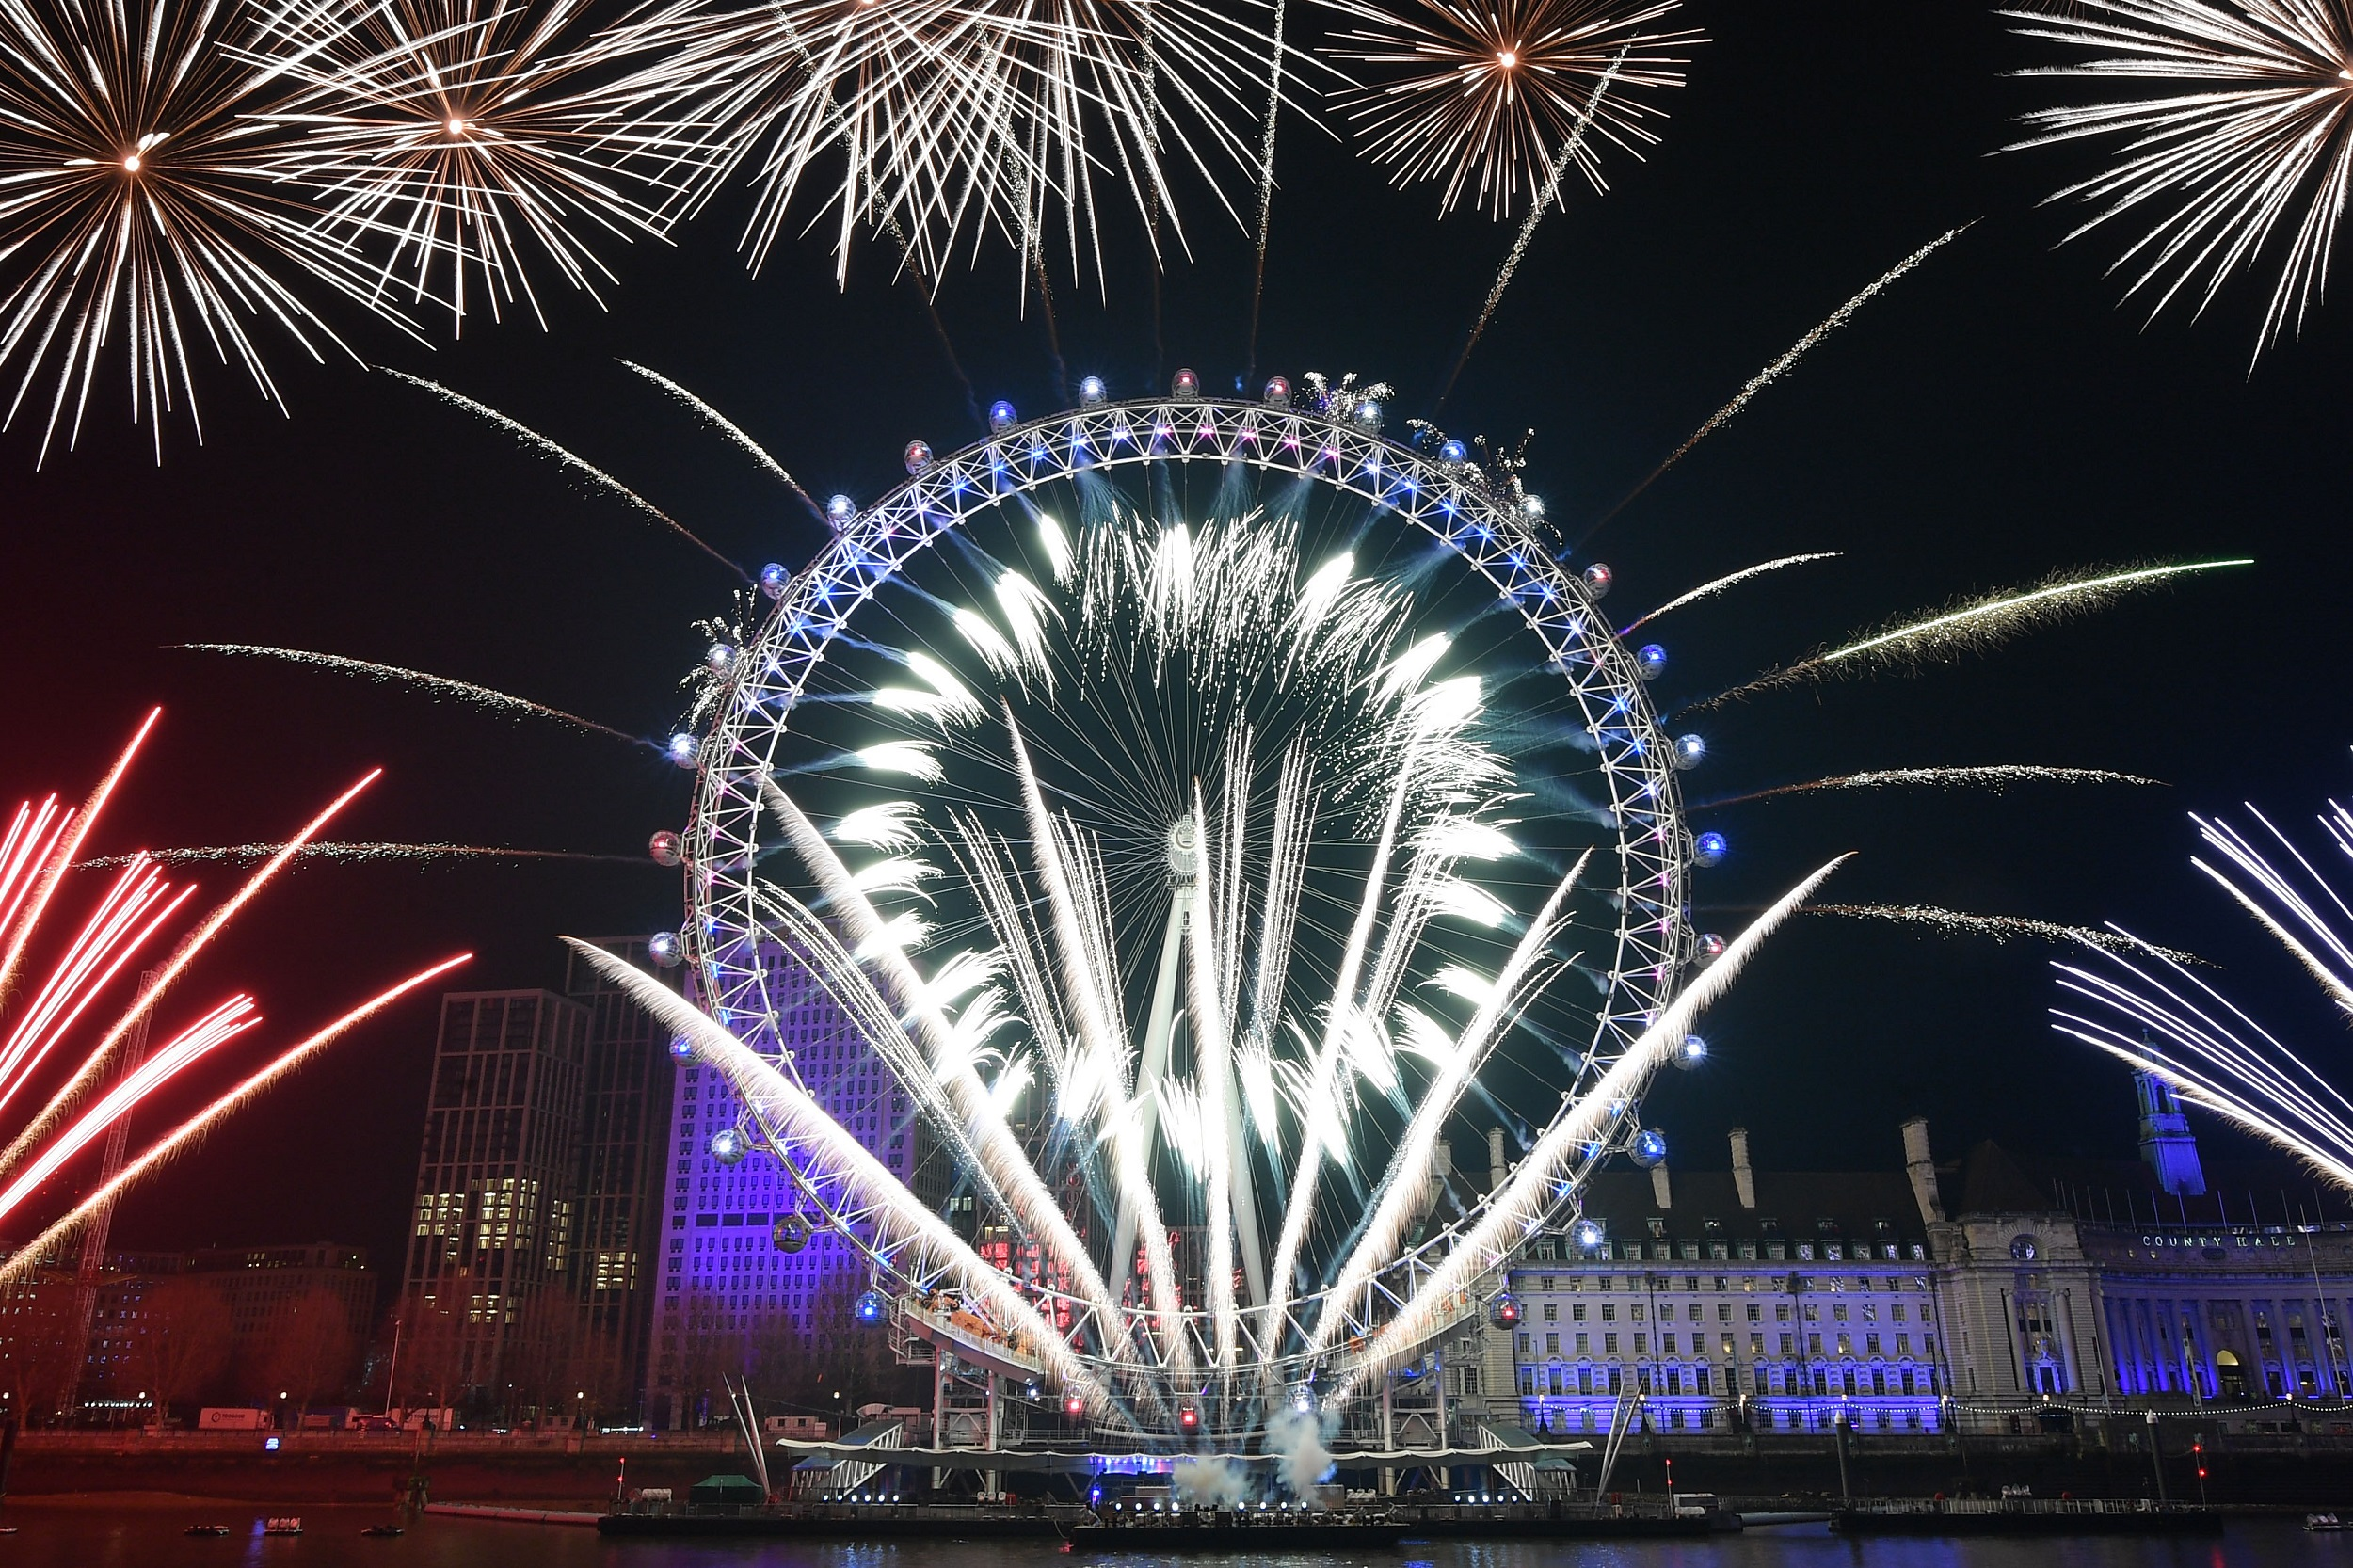 Mayor cancels London's New Year's Eve fireworks